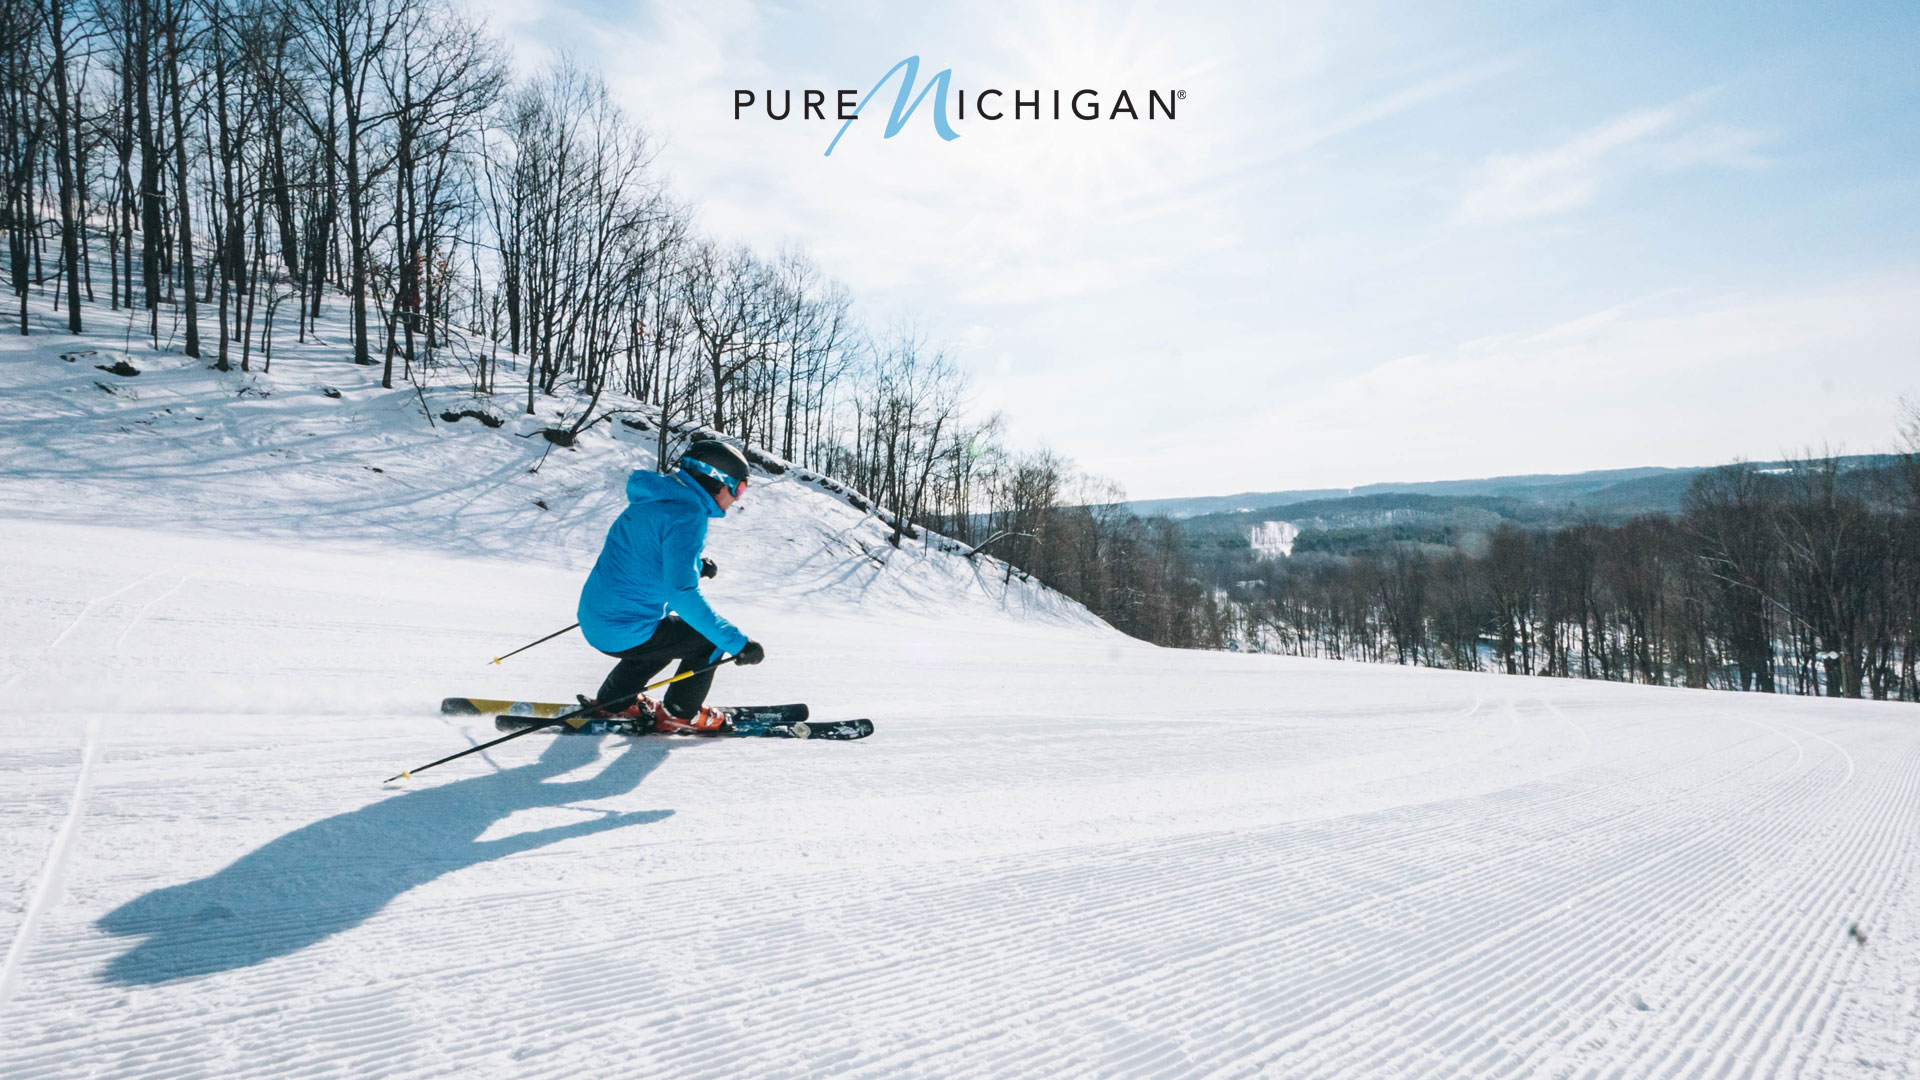 Skier on Schuss Mountain at Shanty Creek Resort